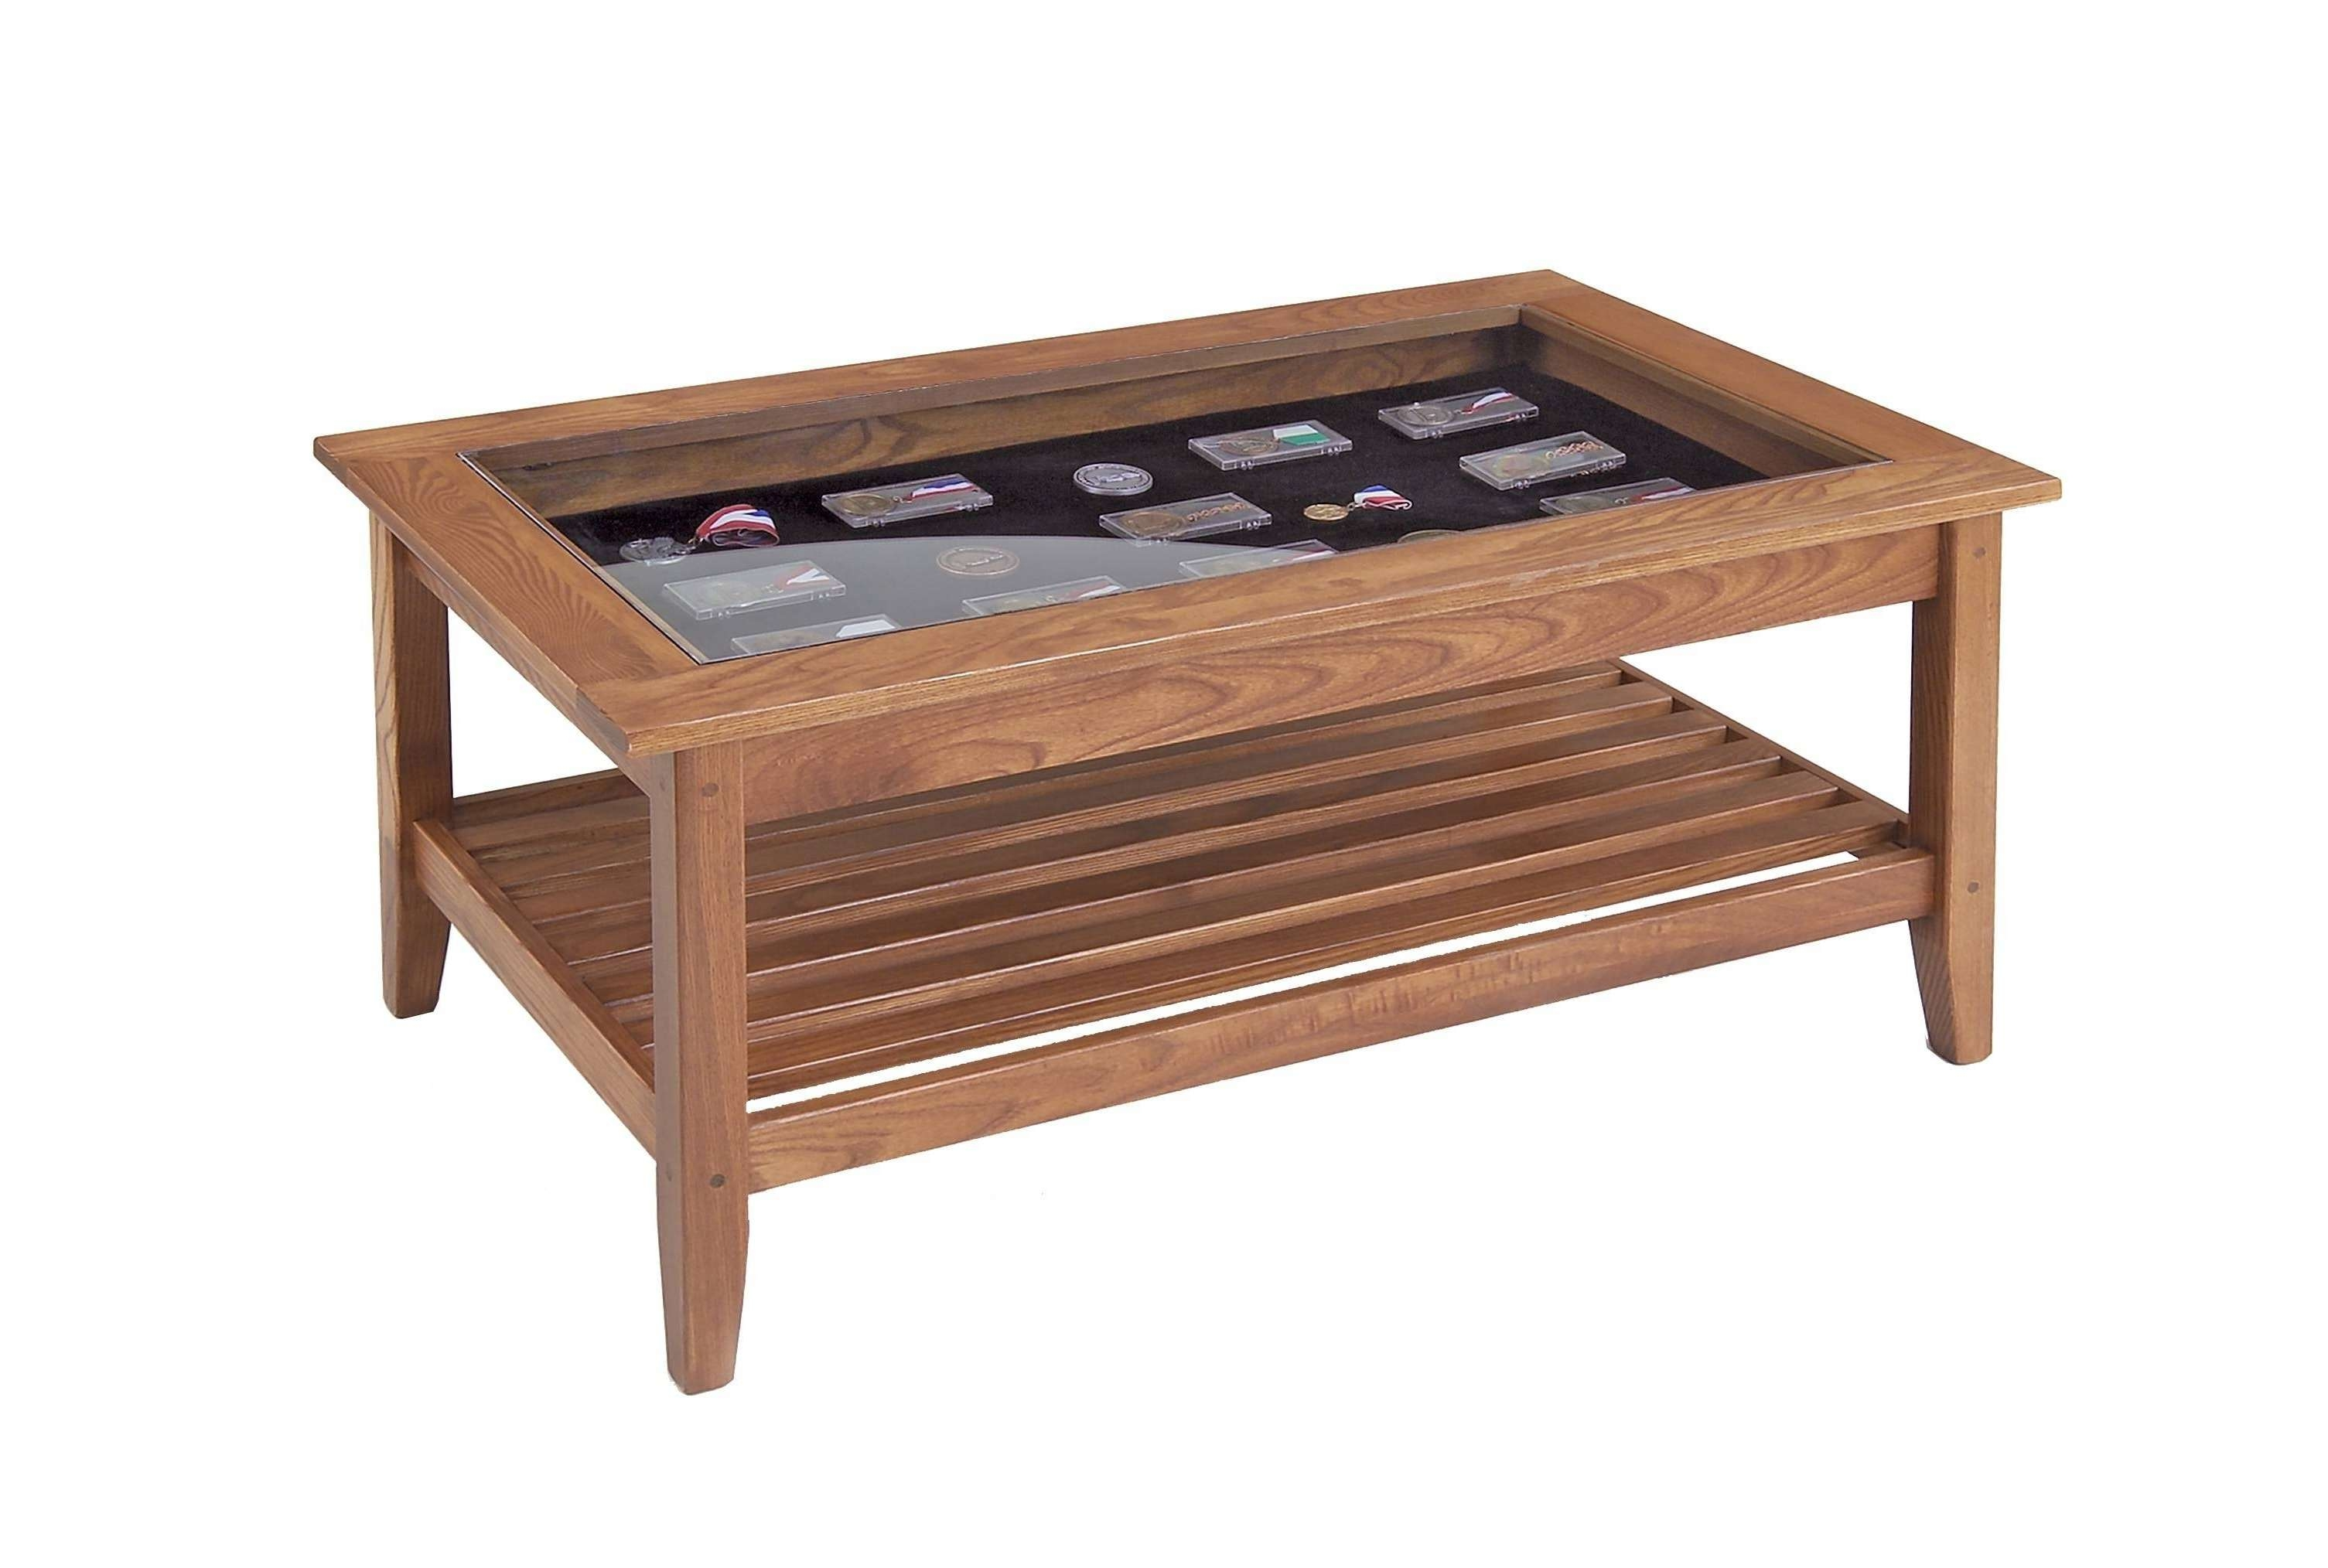 Best Coffee Table Glass Top Display Drawer Within 30 Best Ideas Of For Most Up To Date Coffee Tables With Glass Top Display Drawer (View 15 of 20)